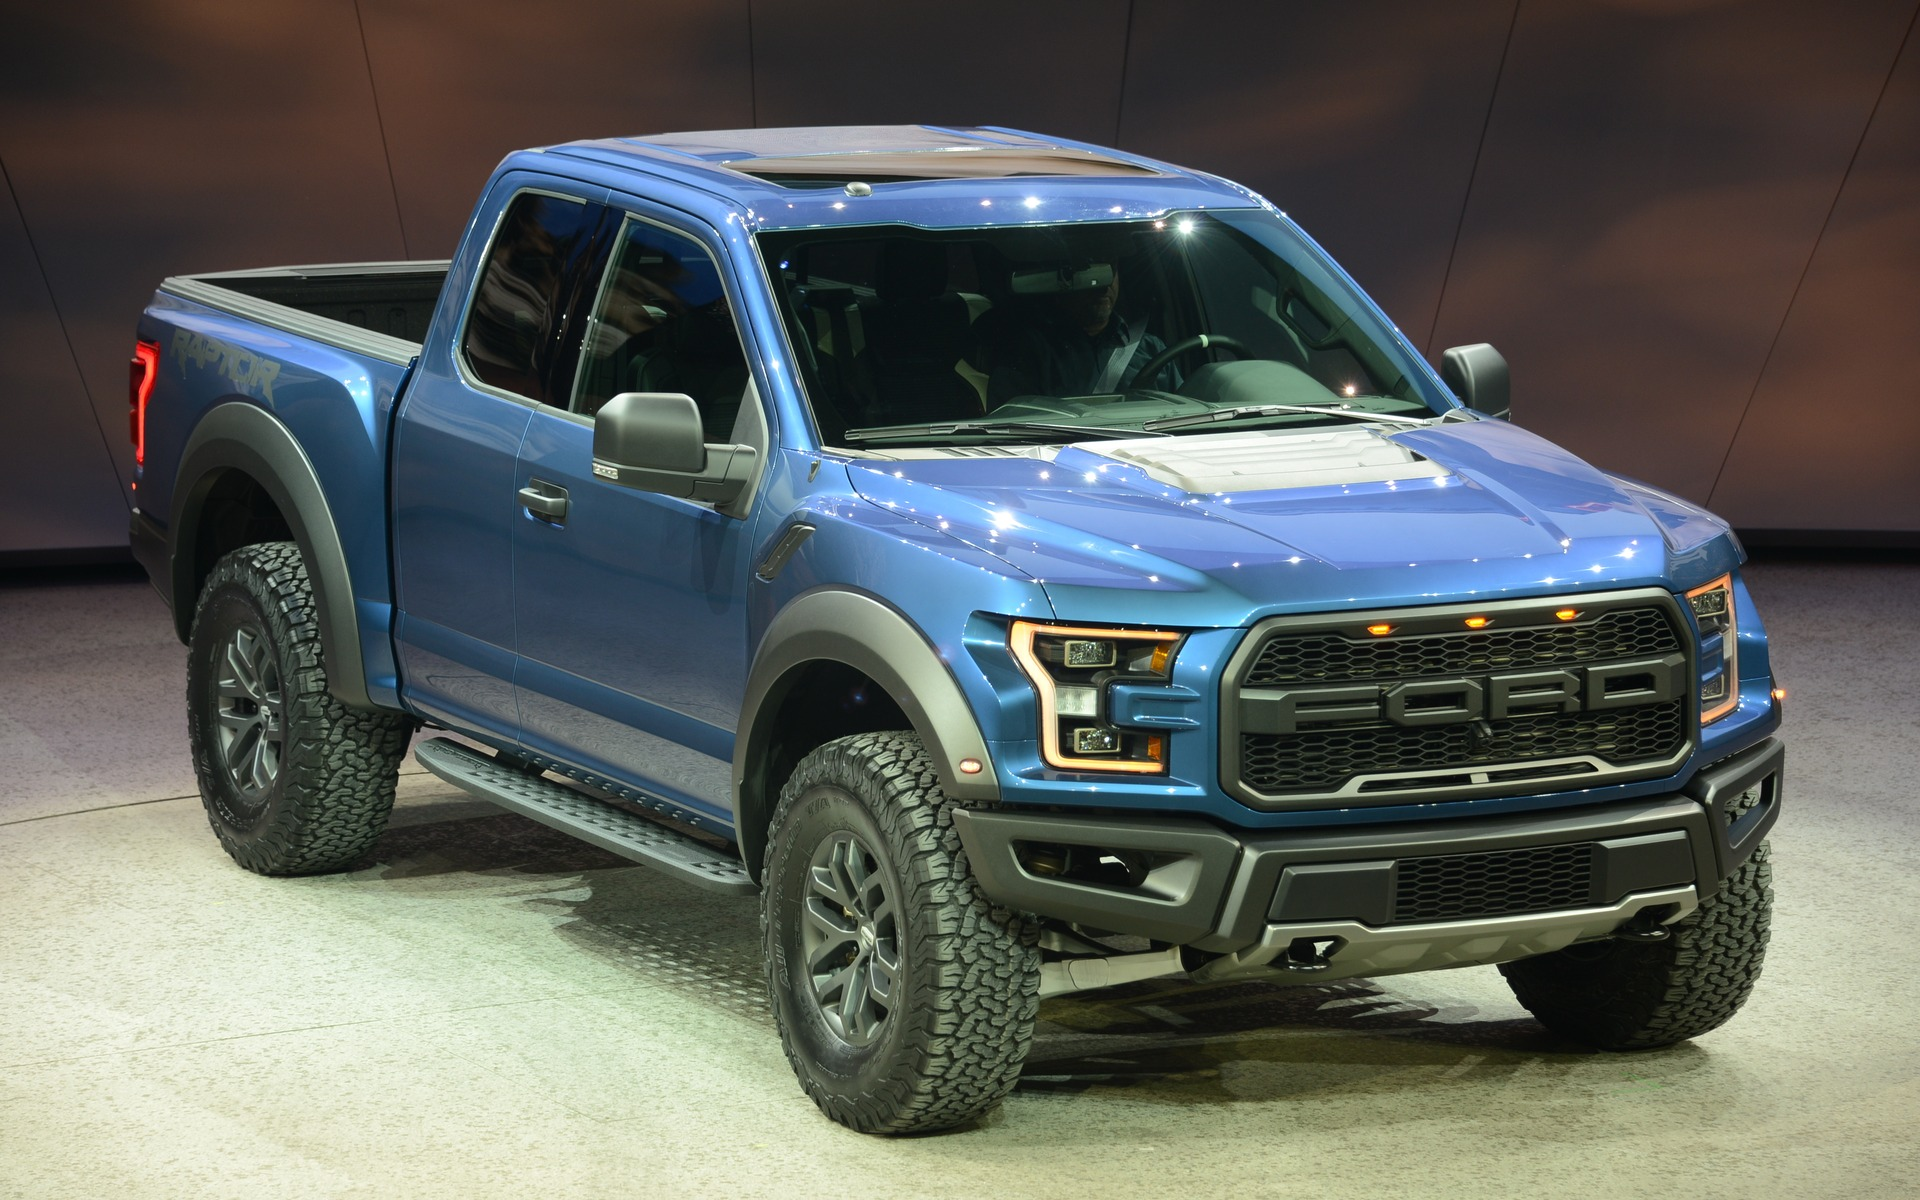 growth here announces by news raptor price are new plan to h things ford f expect